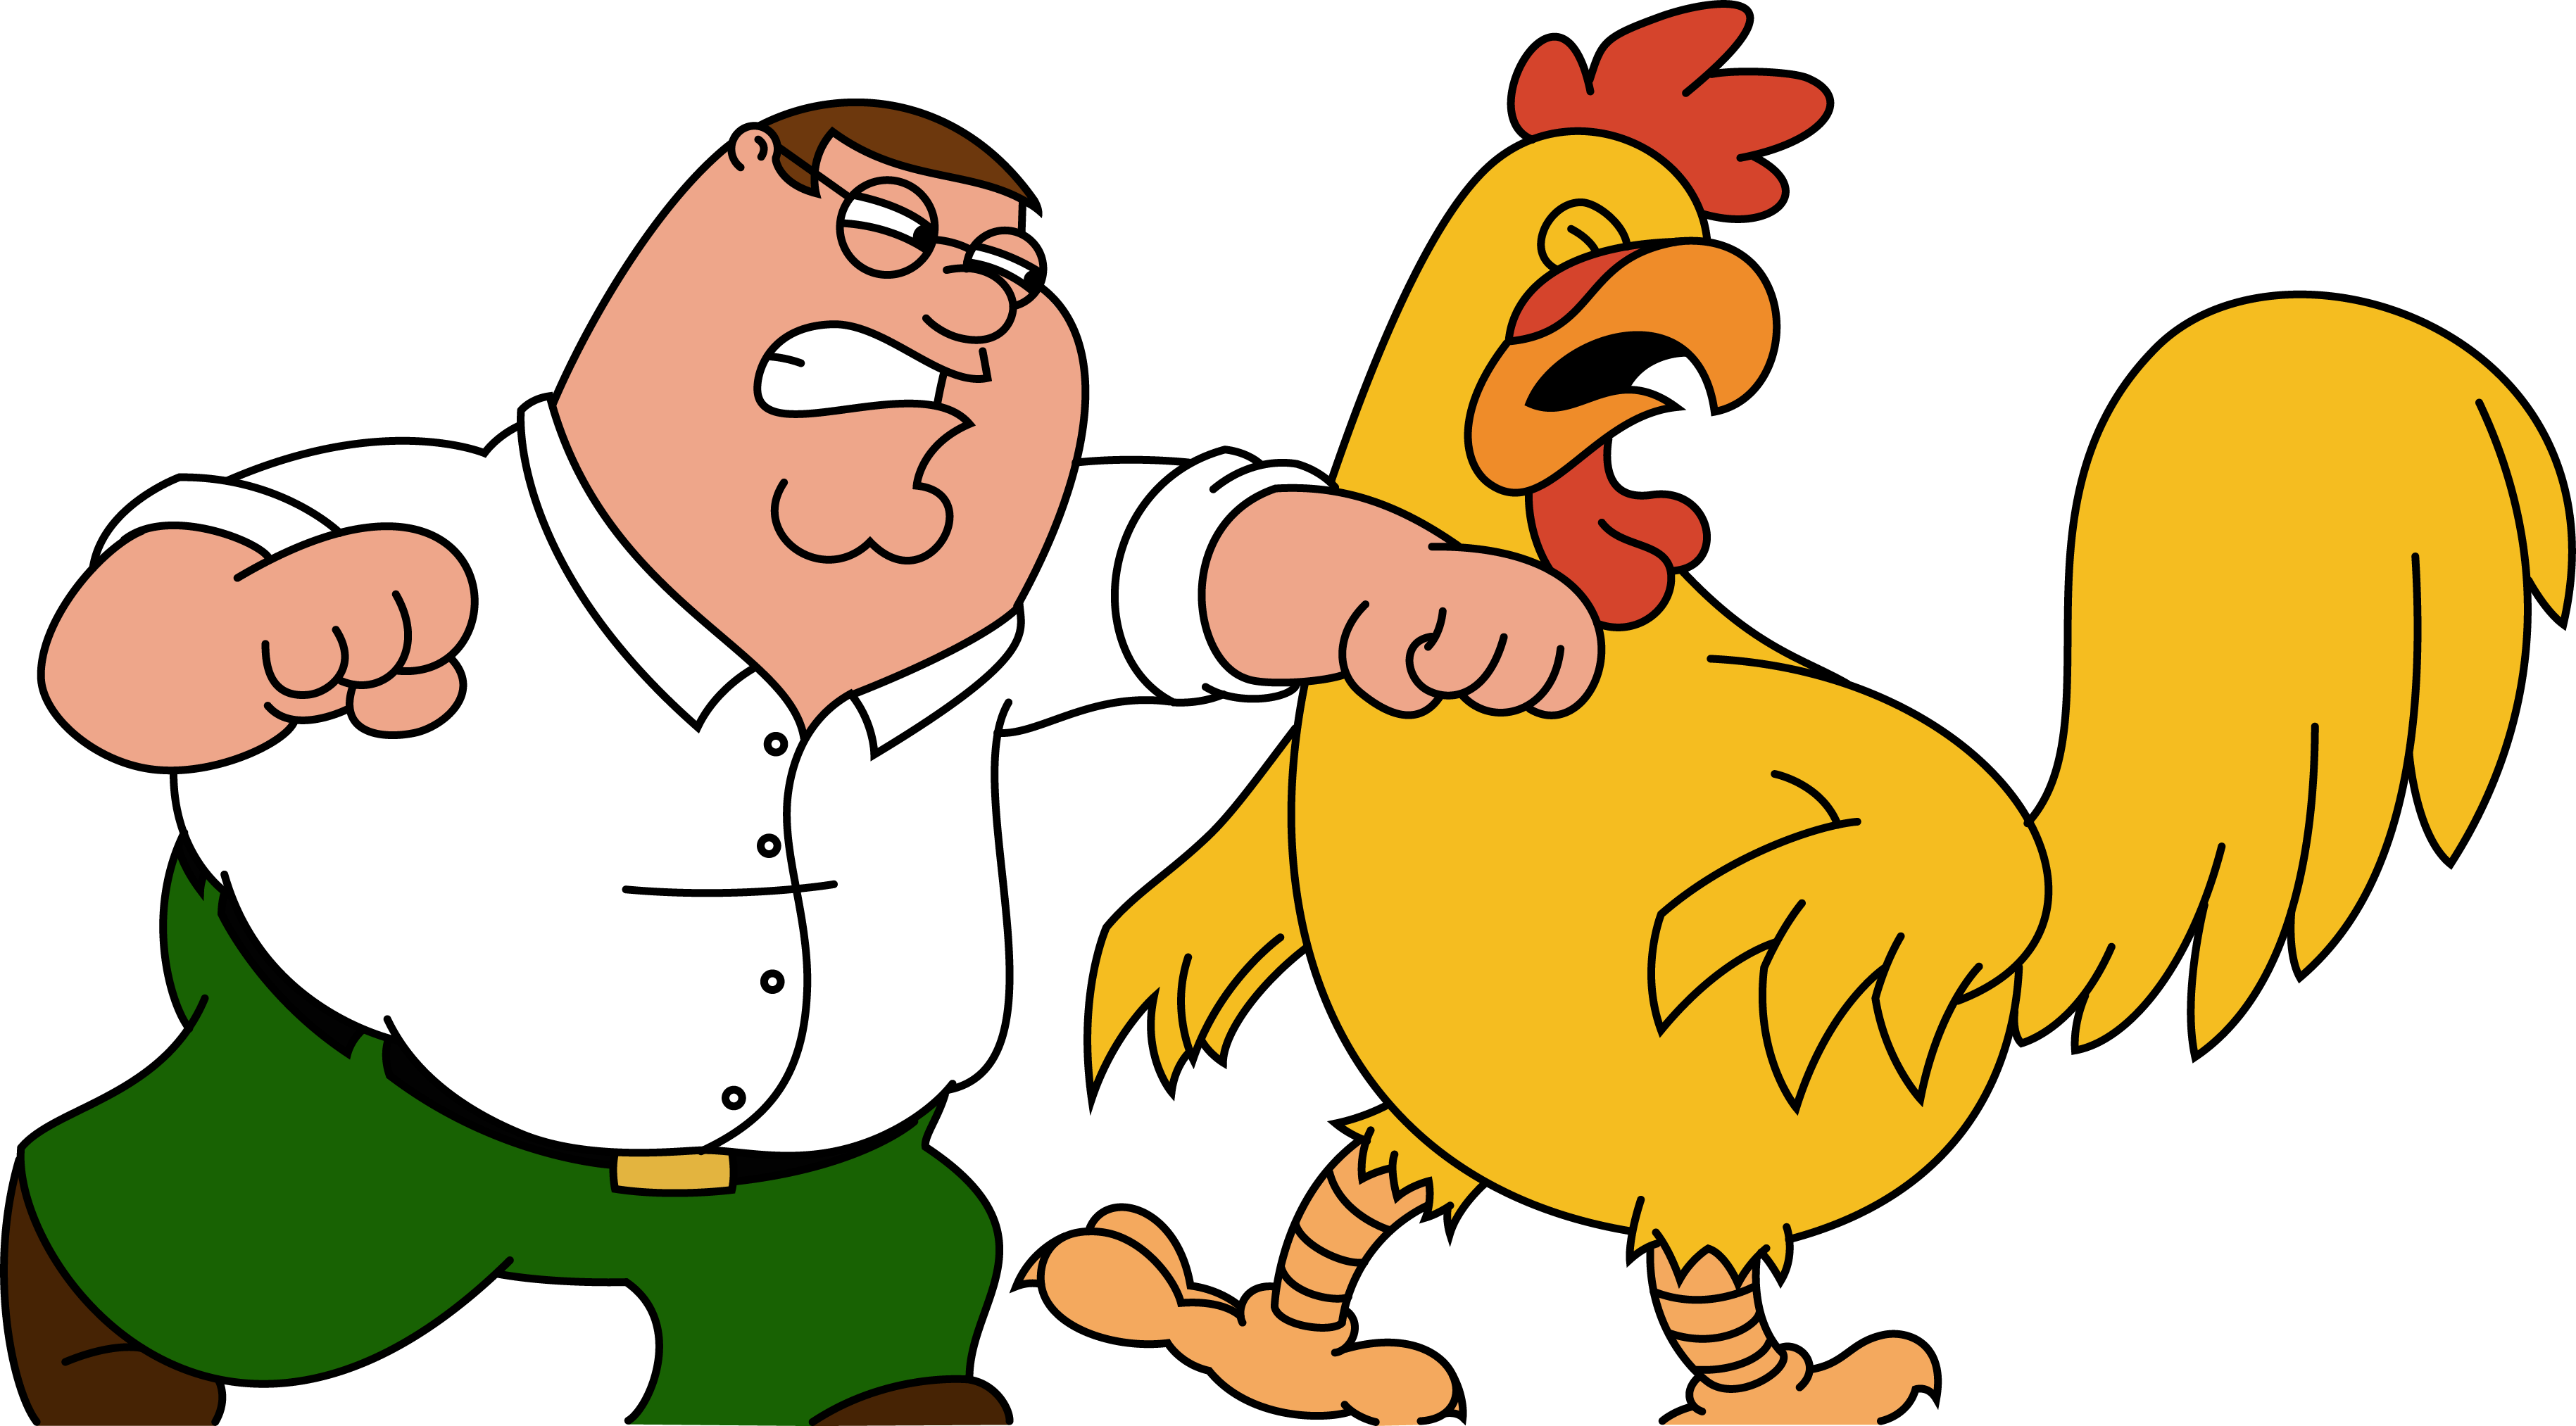 Chicken vs Peter Family Guy   Wallpaper 38102 3659x2026